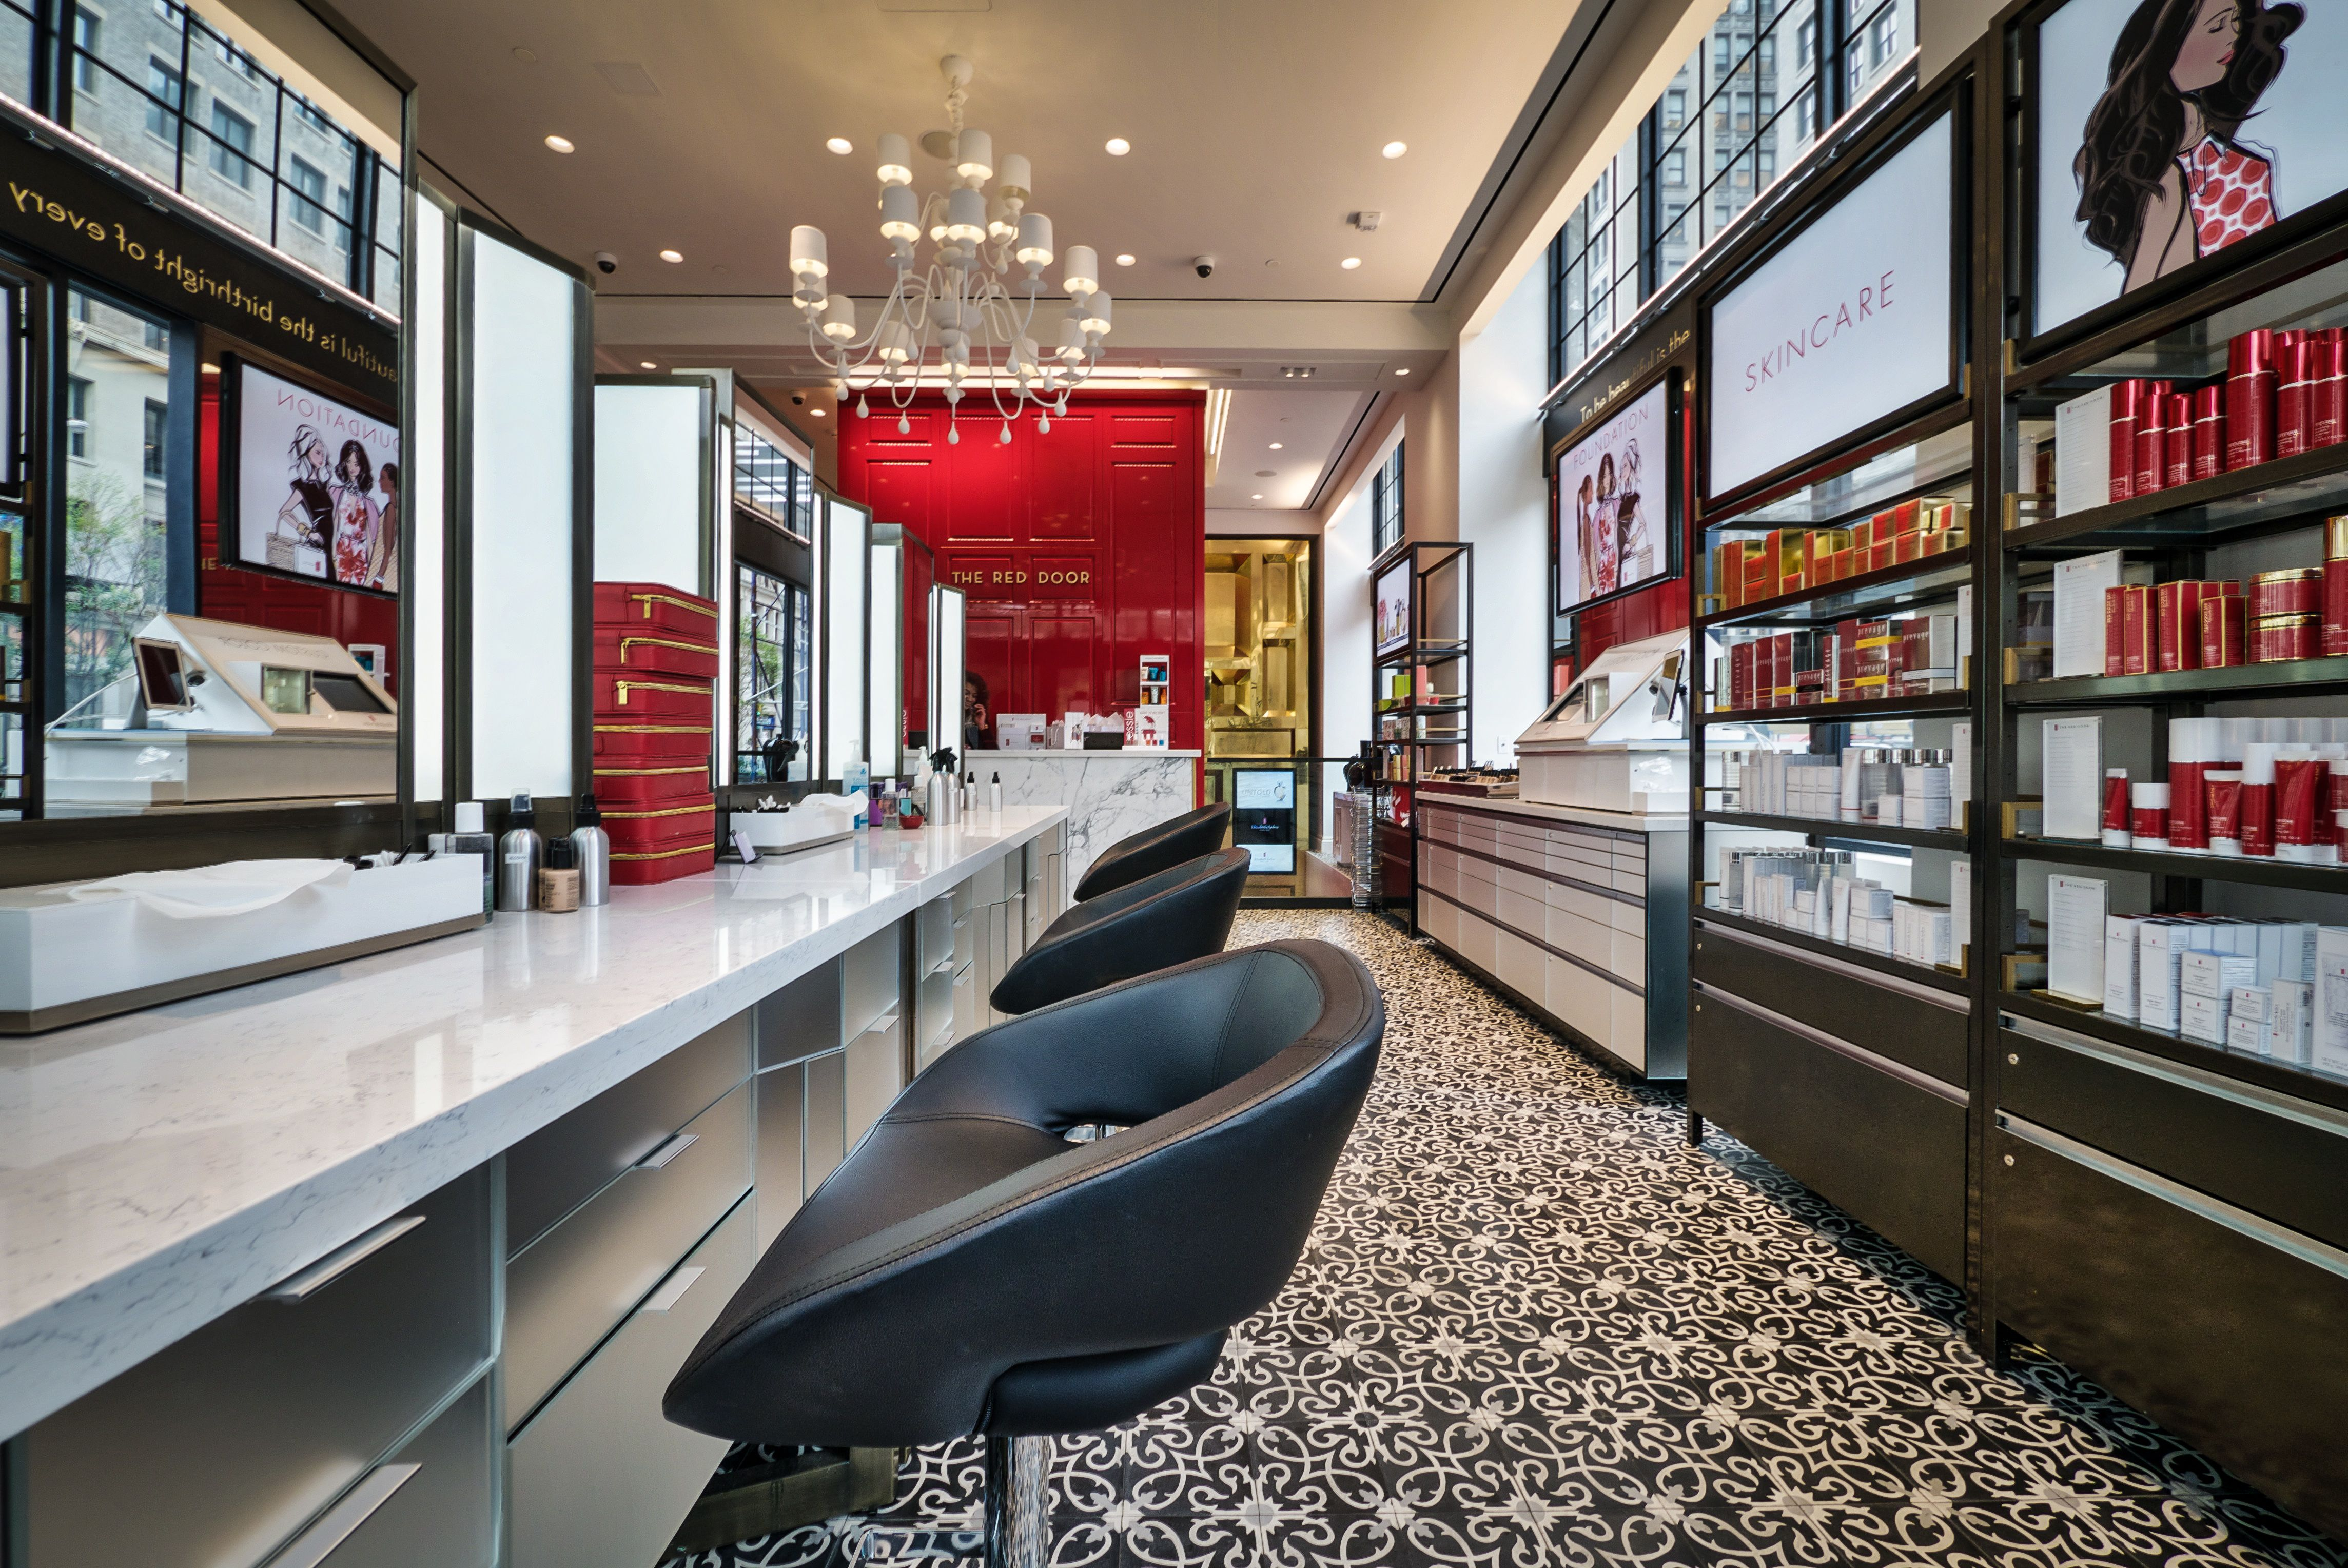 Elizabeth Arden Red Door Spa In The Heart Of Union Square Which